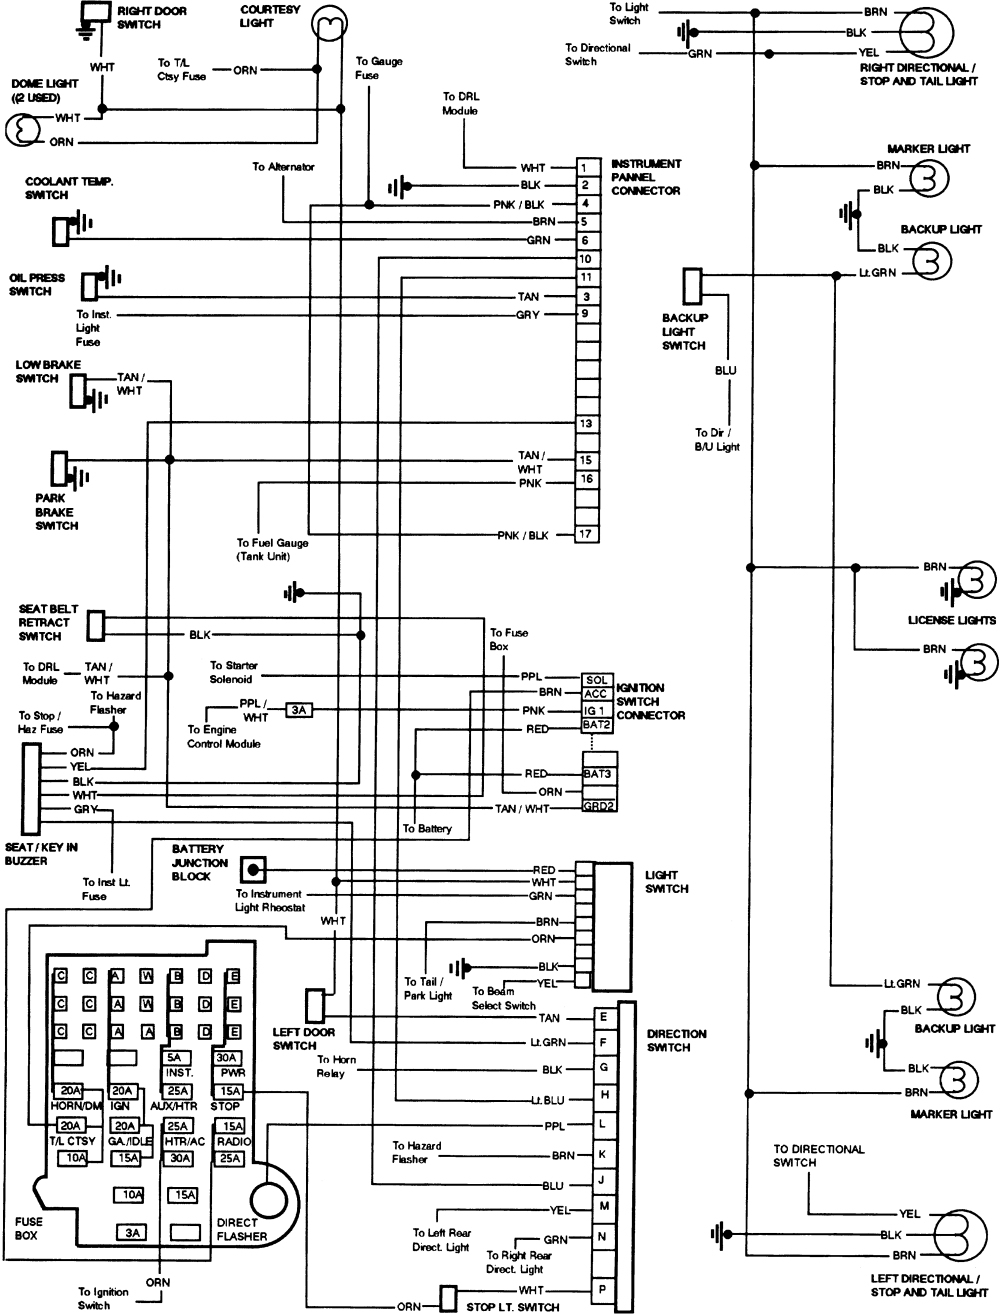 Wiring Diagrams For Chevy Trucks Gooddy Org In Silverado Diagram New - Chevy Silverado Wiring Diagram